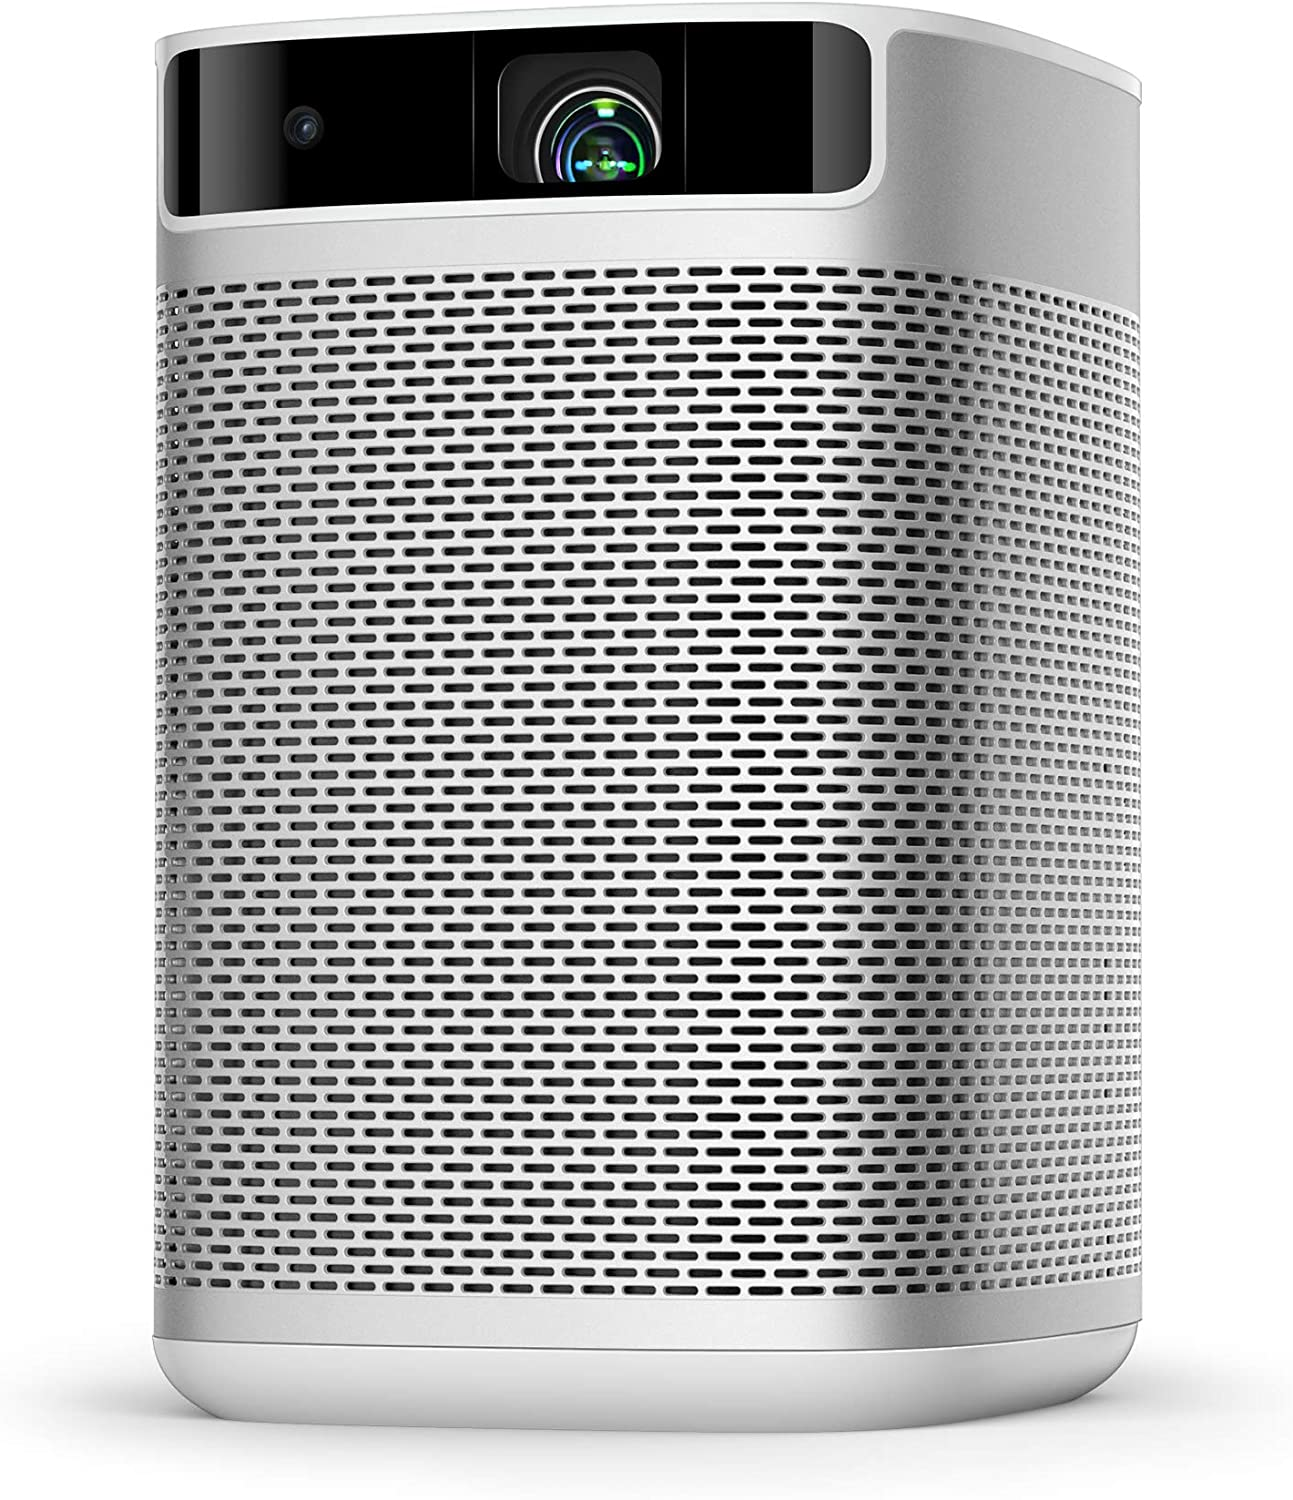 Xgimi Mogo Pro Portable Native Smart Movie Indoor/Outdoor Projector with Wi-Fi, Bluetooth